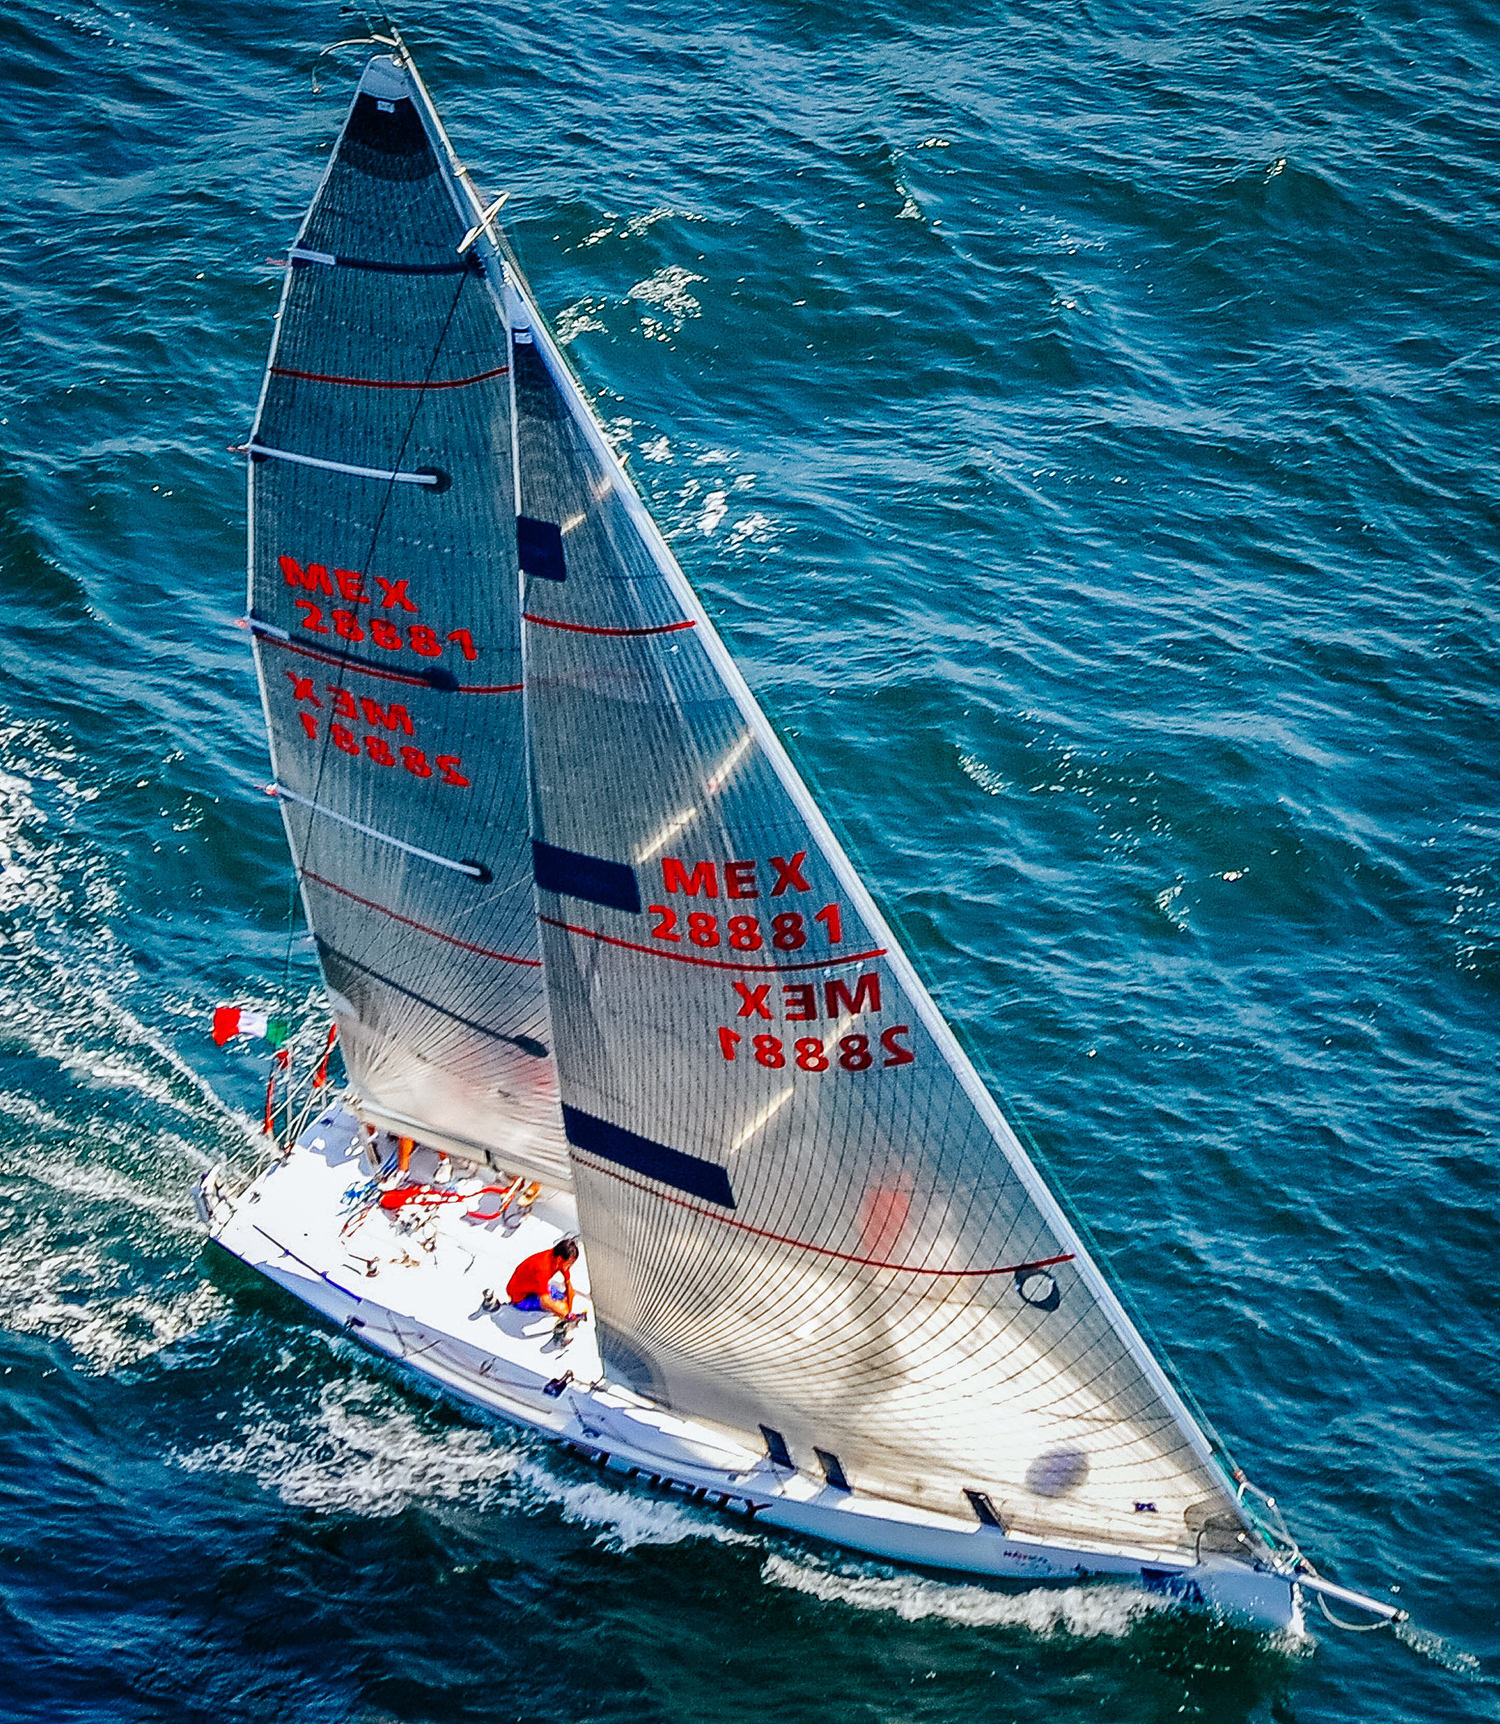 UK+Sailmakers+Sail+Numbers+Racing+Genoa+CM1200+Velocity.jpg